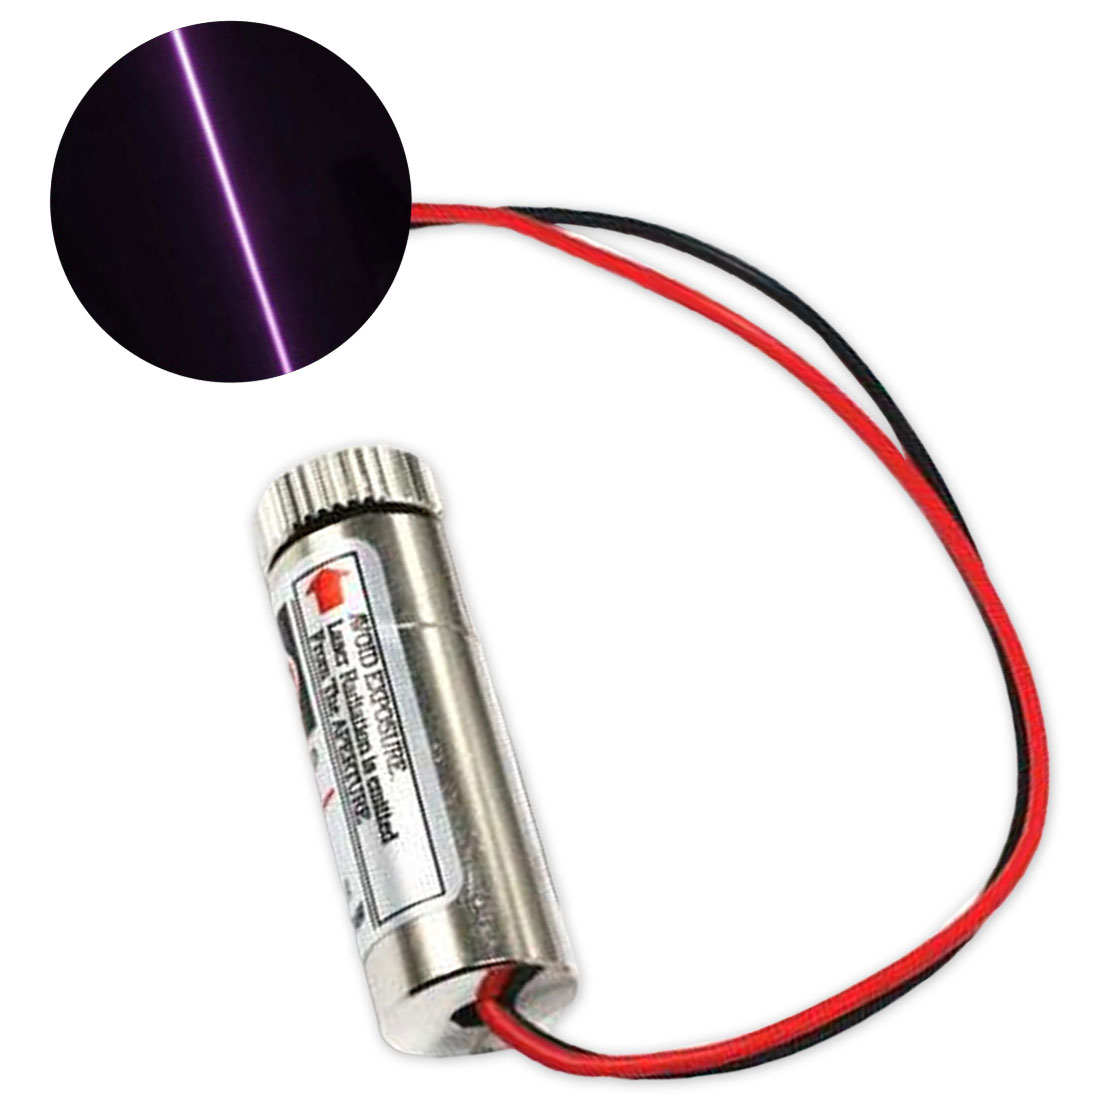 1pcs 650nm 5-30mW Red Point  Laser Module Head Glass Lens Focusable Industrial Class